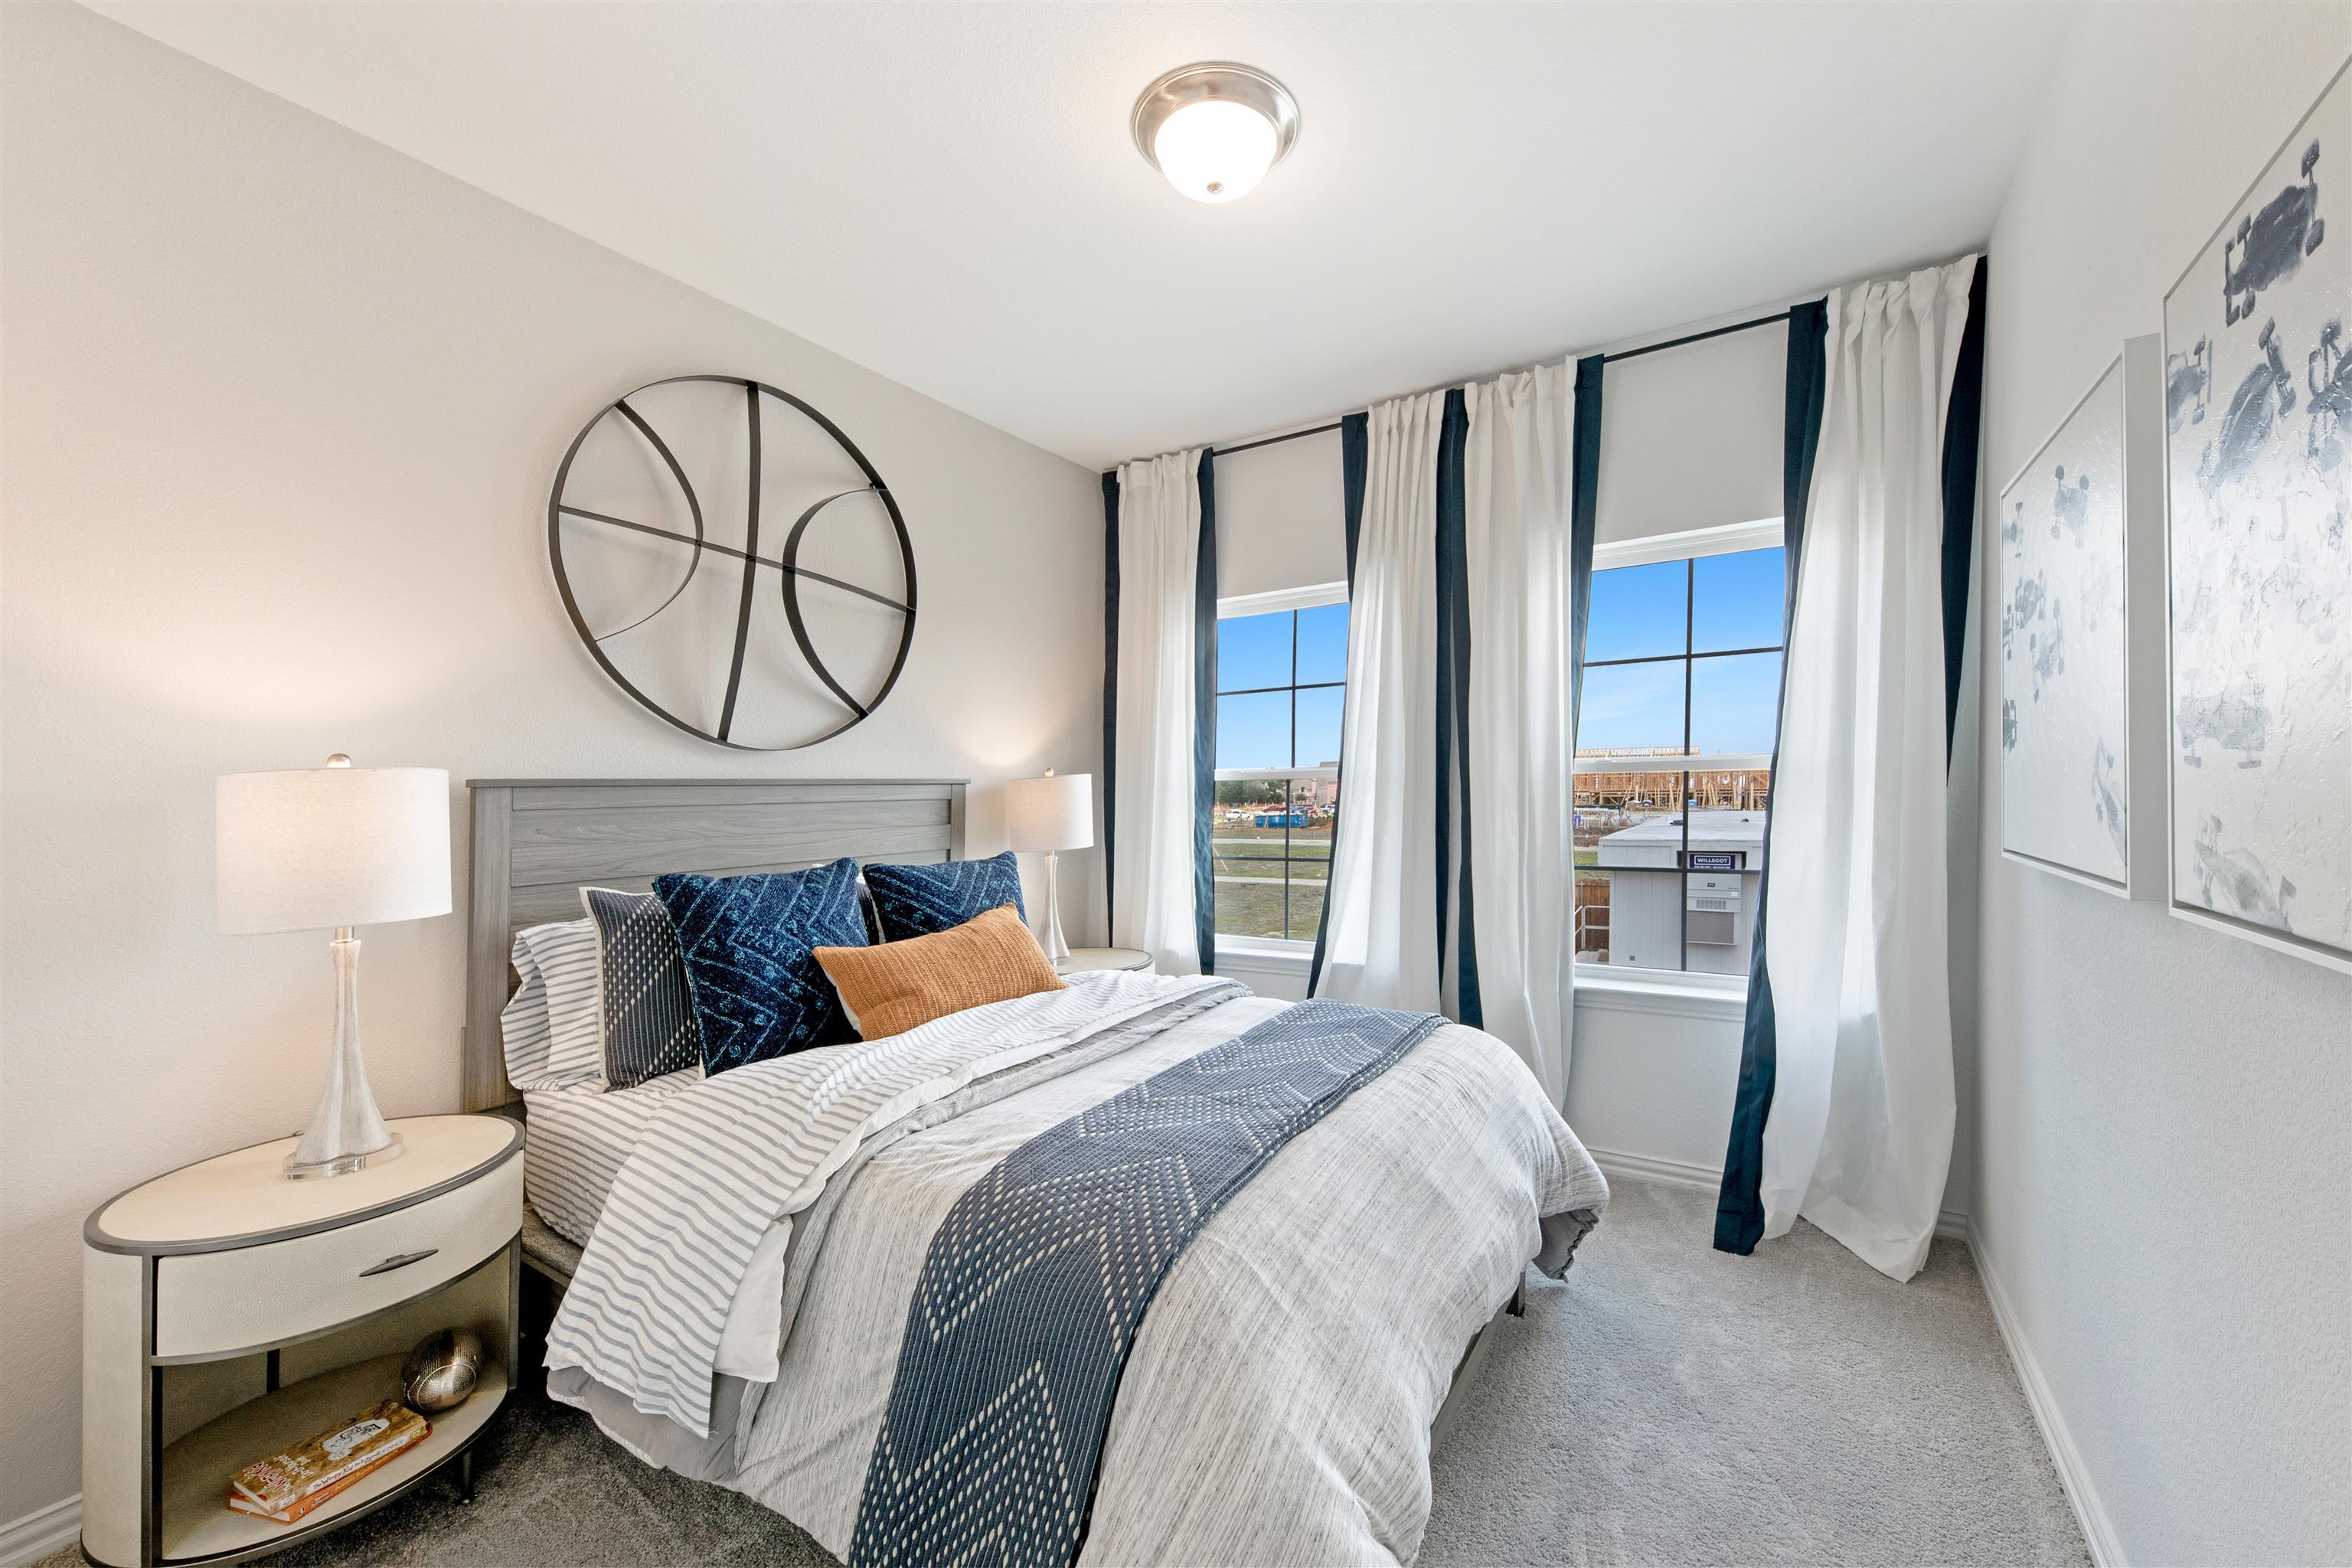 Bedroom featured in the Northwestern By Ashton Woods in Dallas, TX